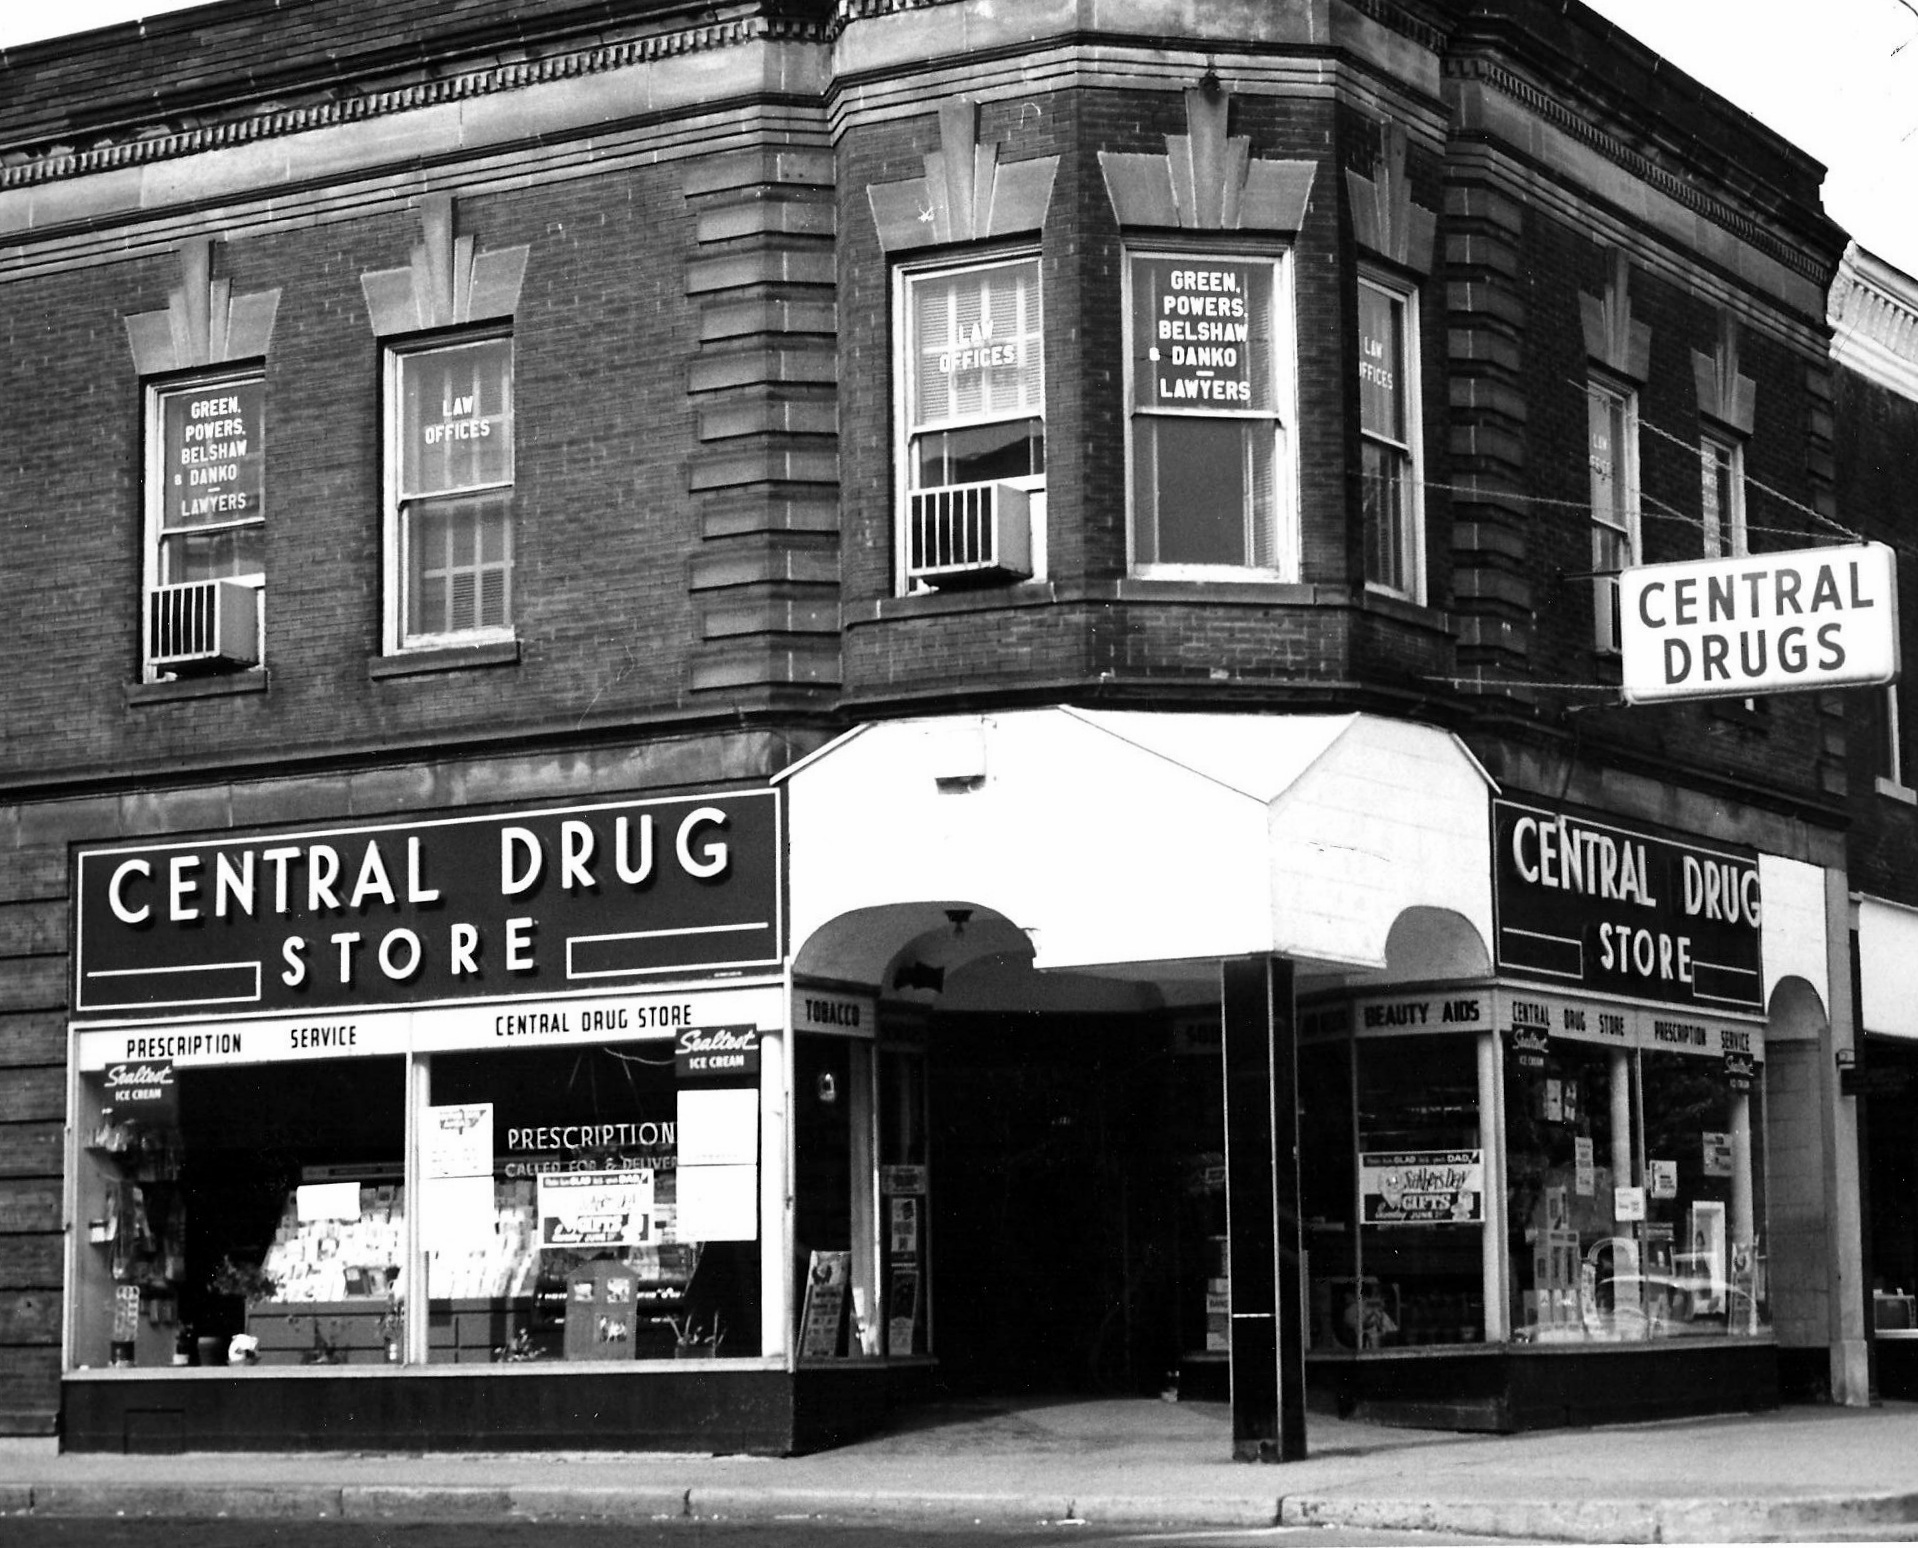 Central Drug was located at 1452 119th Street. On the second floor of this building was the law office of Green, Powers, Belshaw and Danko. The second floor of numerous downtown building were often residential apartments or offices. It was common for lawyers, doctors, dentists, music teachers, and others who needed office space, to operate on the upper floors.